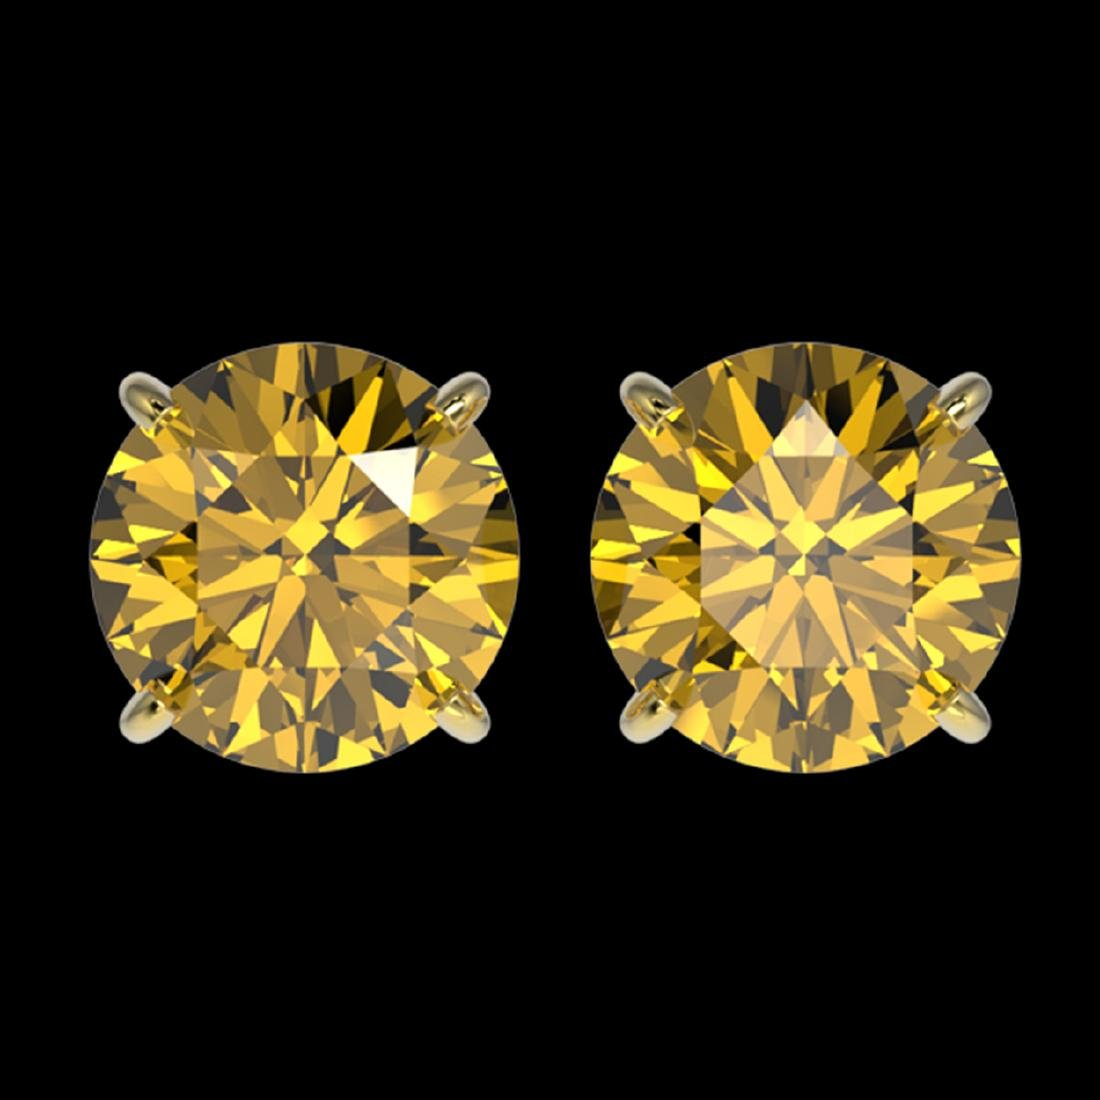 3 ctw Intense Yellow Diamond Stud Earrings 10K Yellow